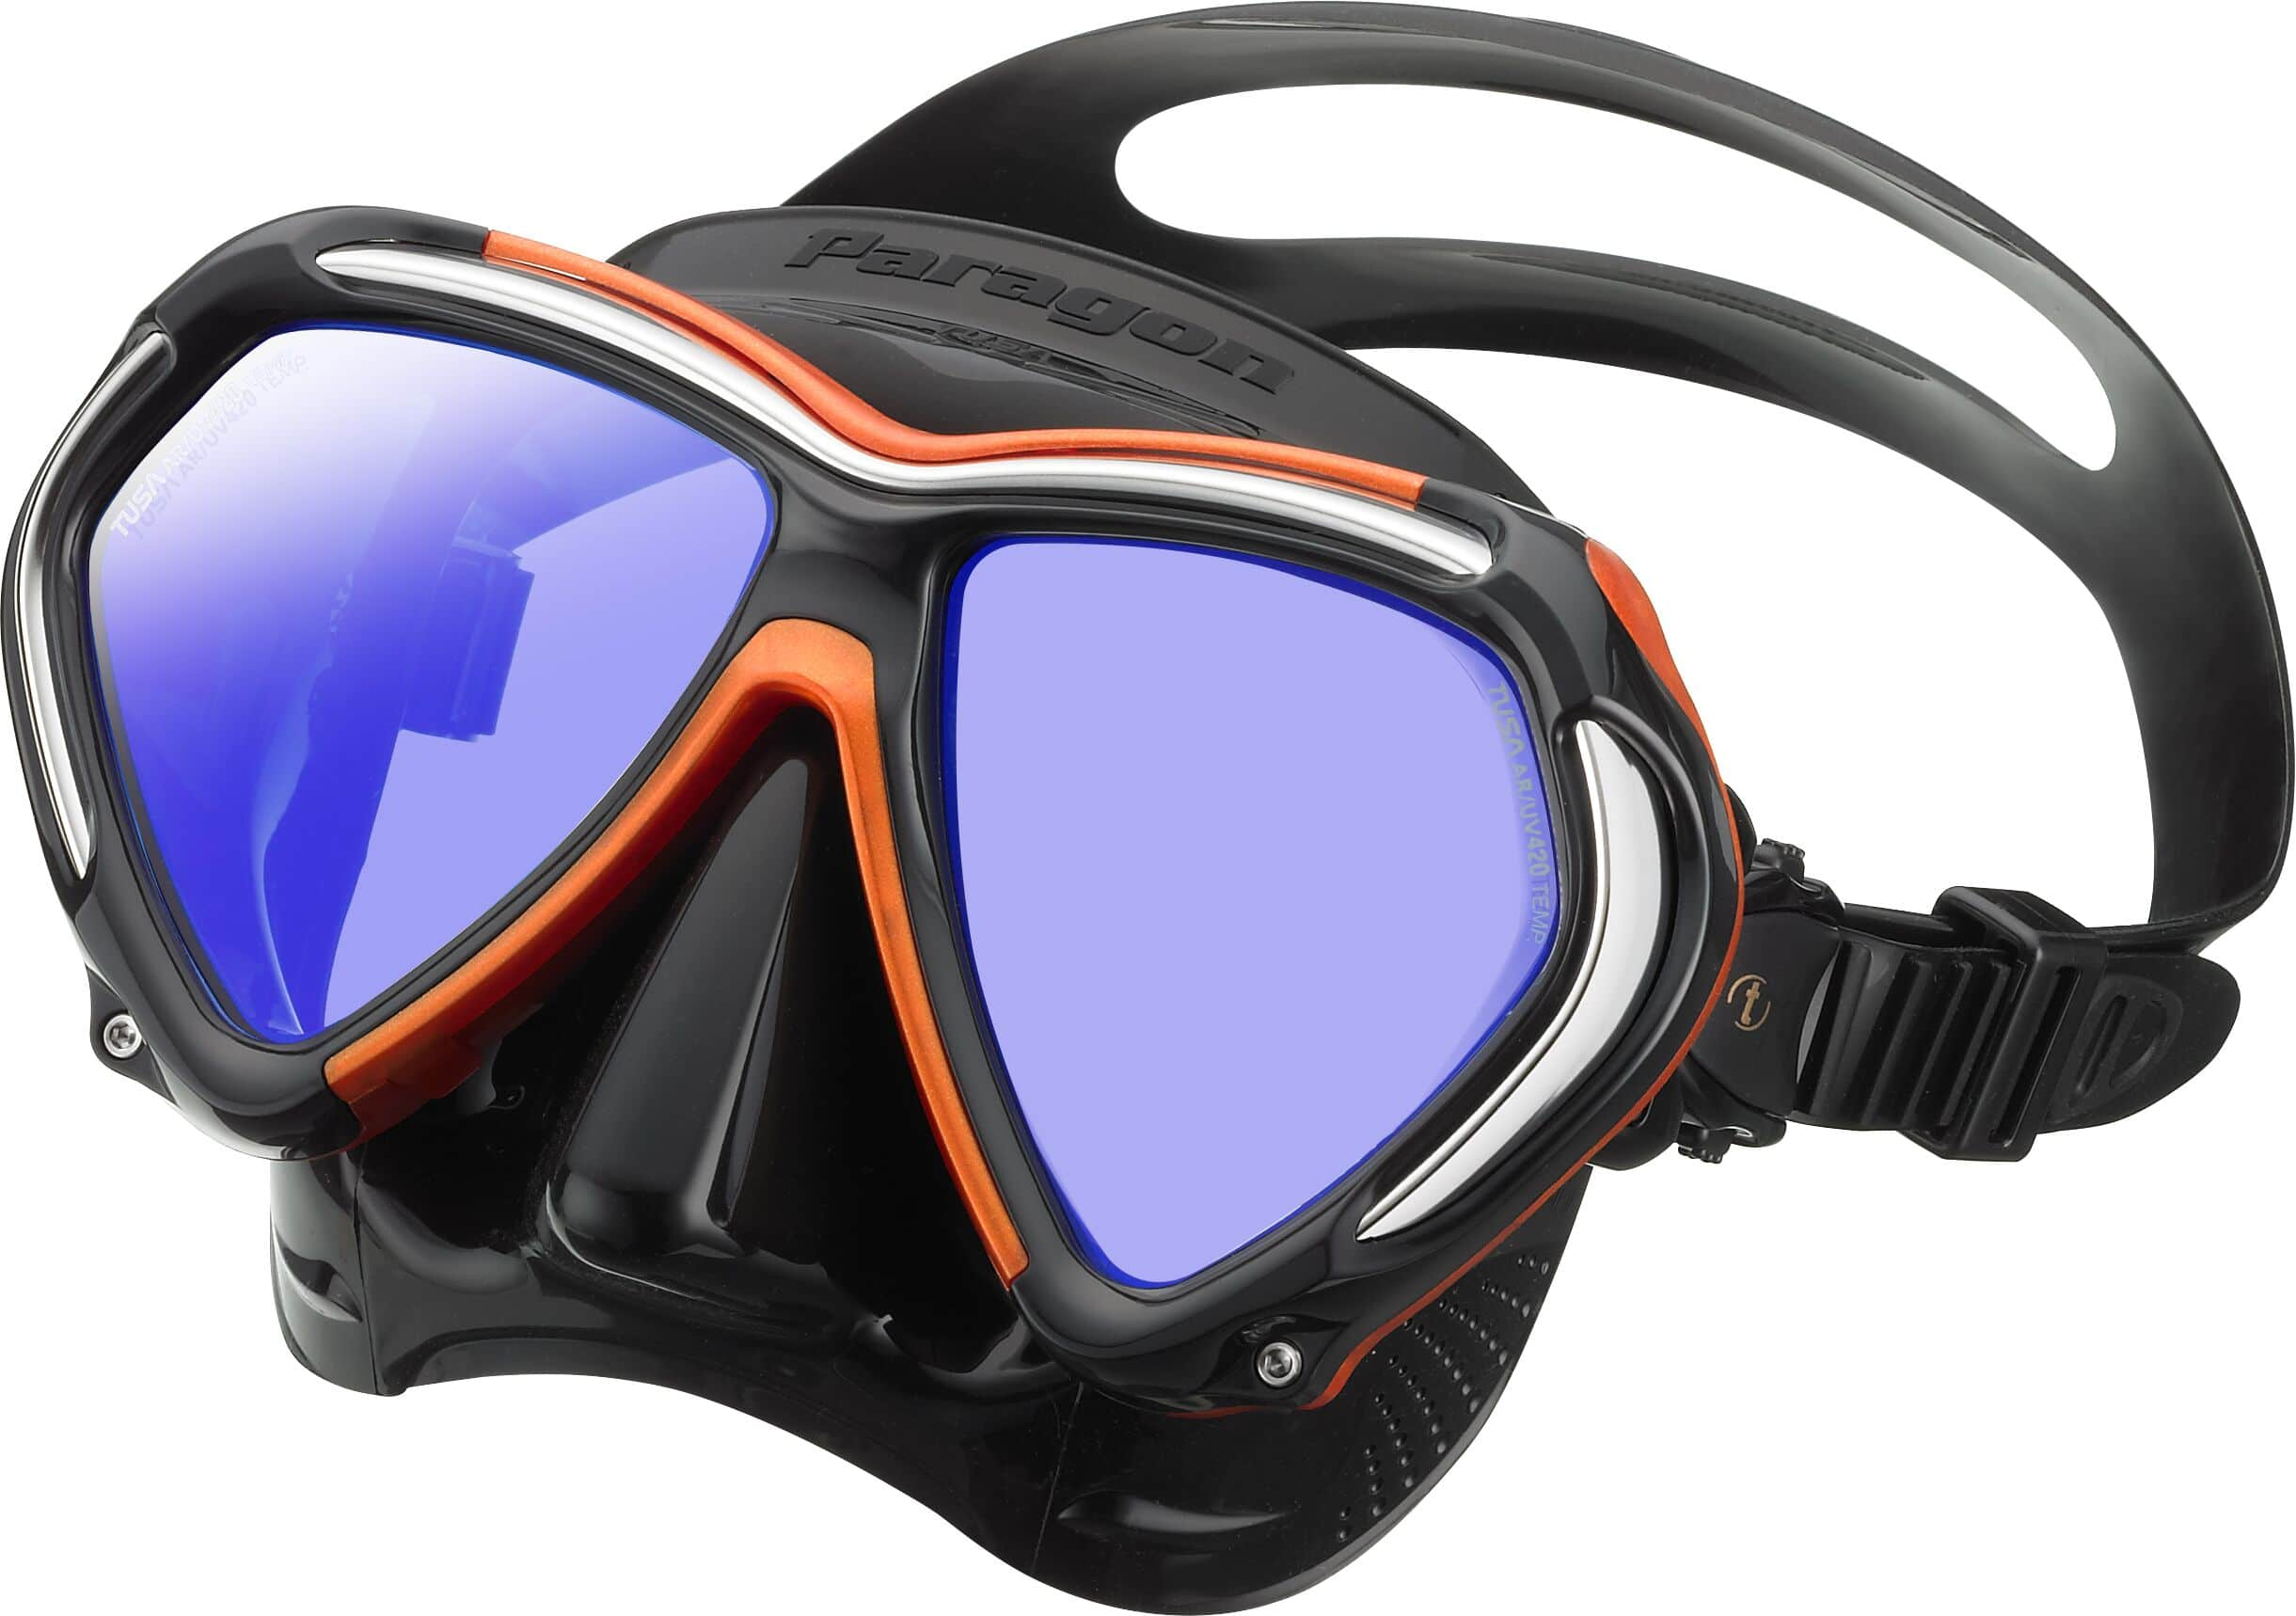 TUSA's Paragon M2001S series dive mask